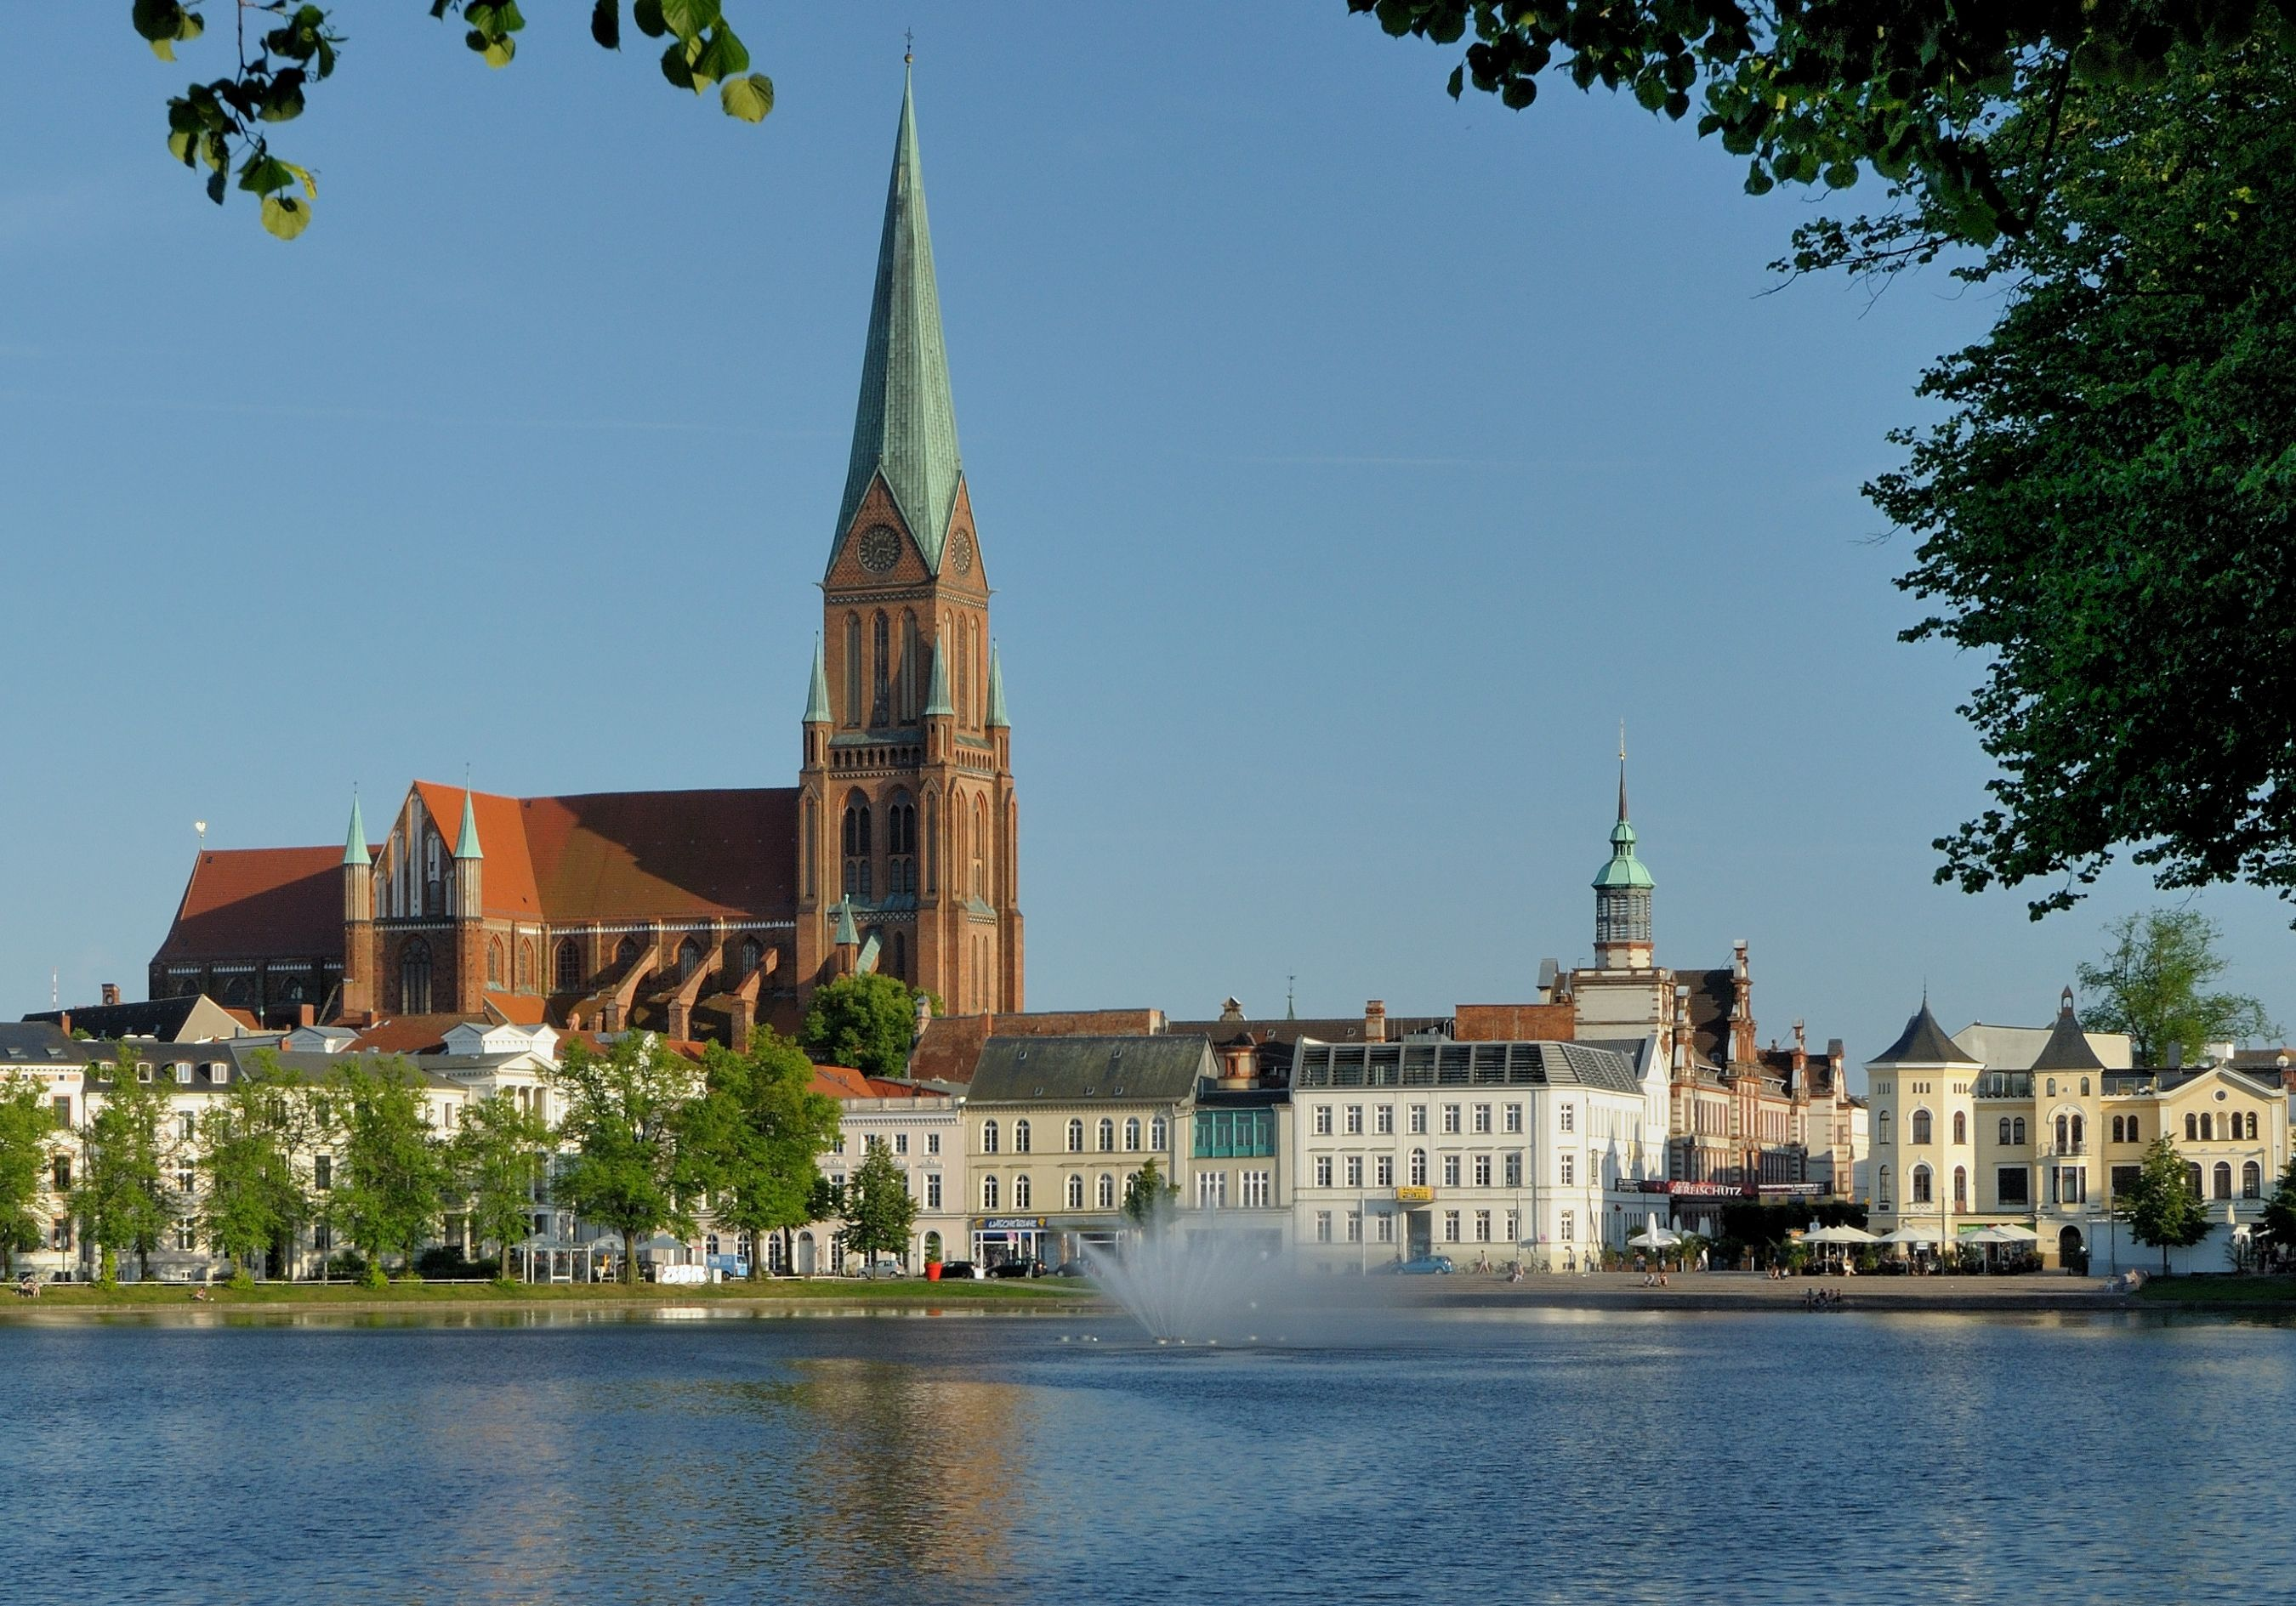 Schweriner Dom St. Marien und St. Johannis ~ Schwerin Cathedral of St. Mary and St. John is an Episcopal church of the Evangelical Lutheran Church in North Germany in Schwerin